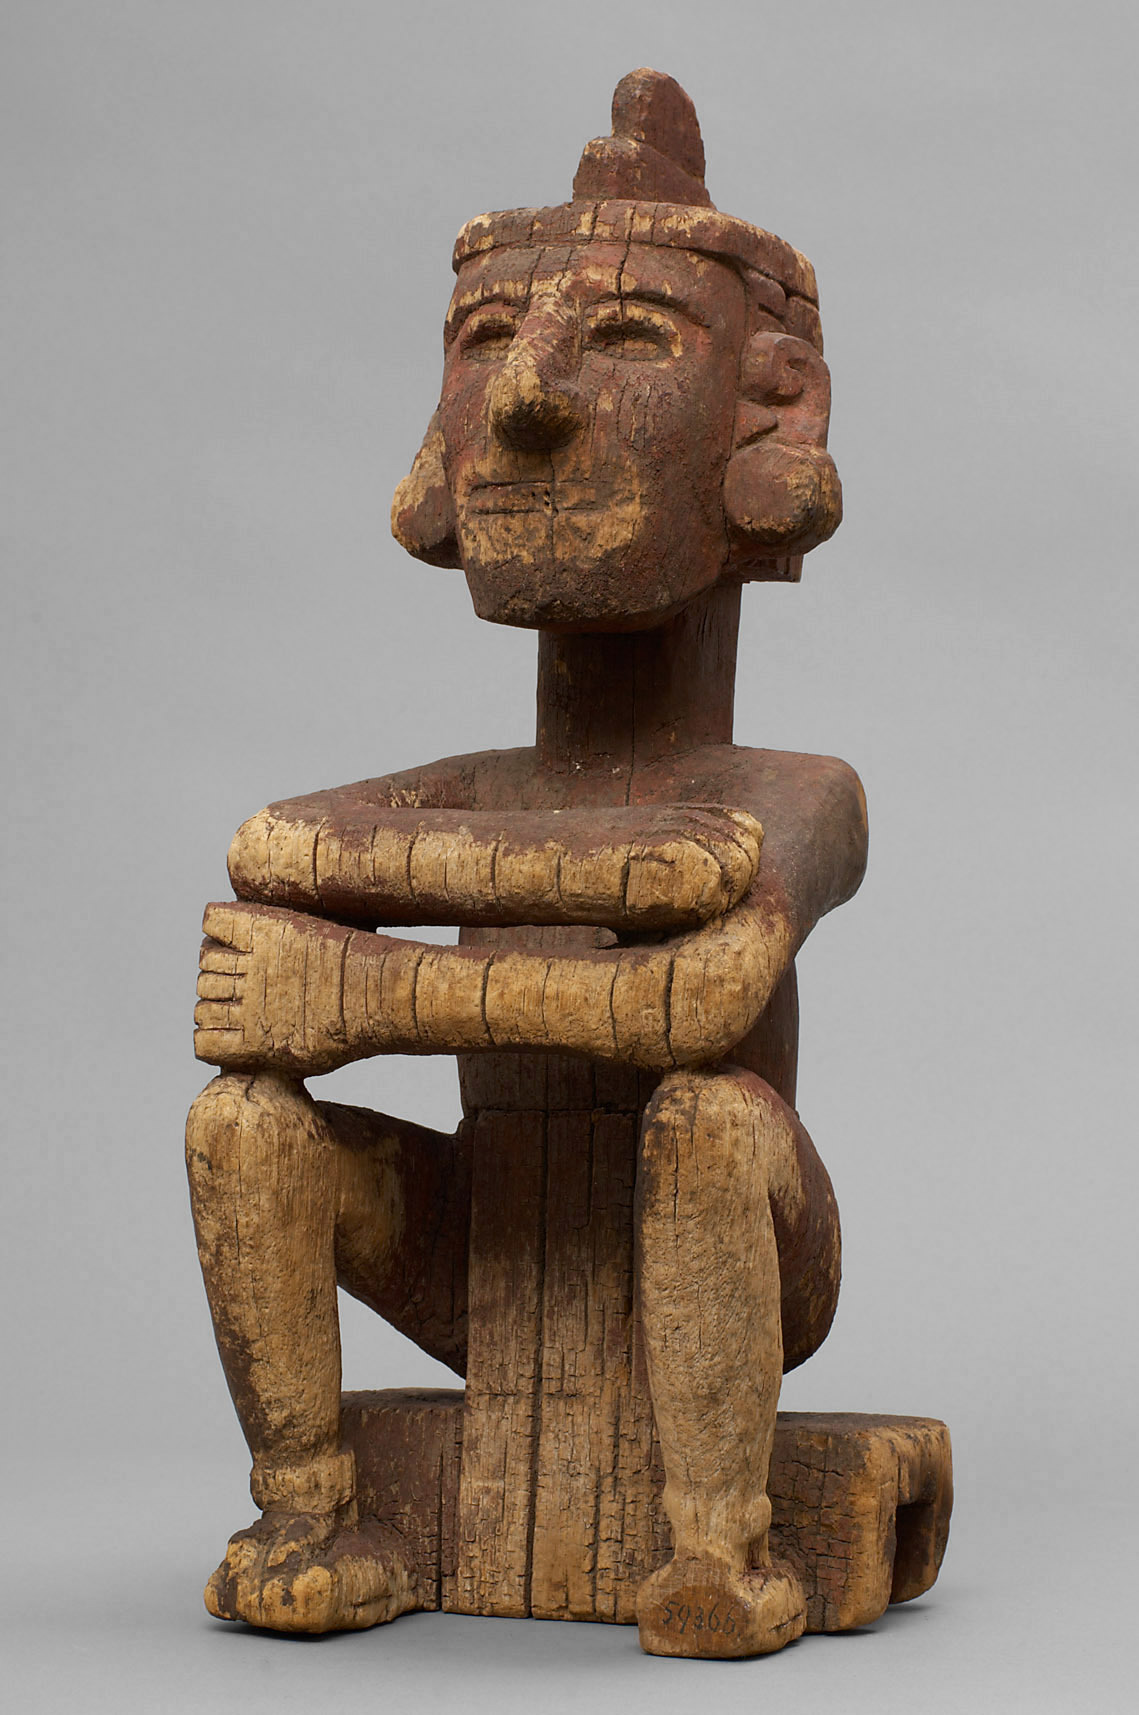 Mesoamerican God of Music, Dance, & Games |  Macuilxóchitl (5 Flowers)  | Circa 1500 © KHM-Museumsverband